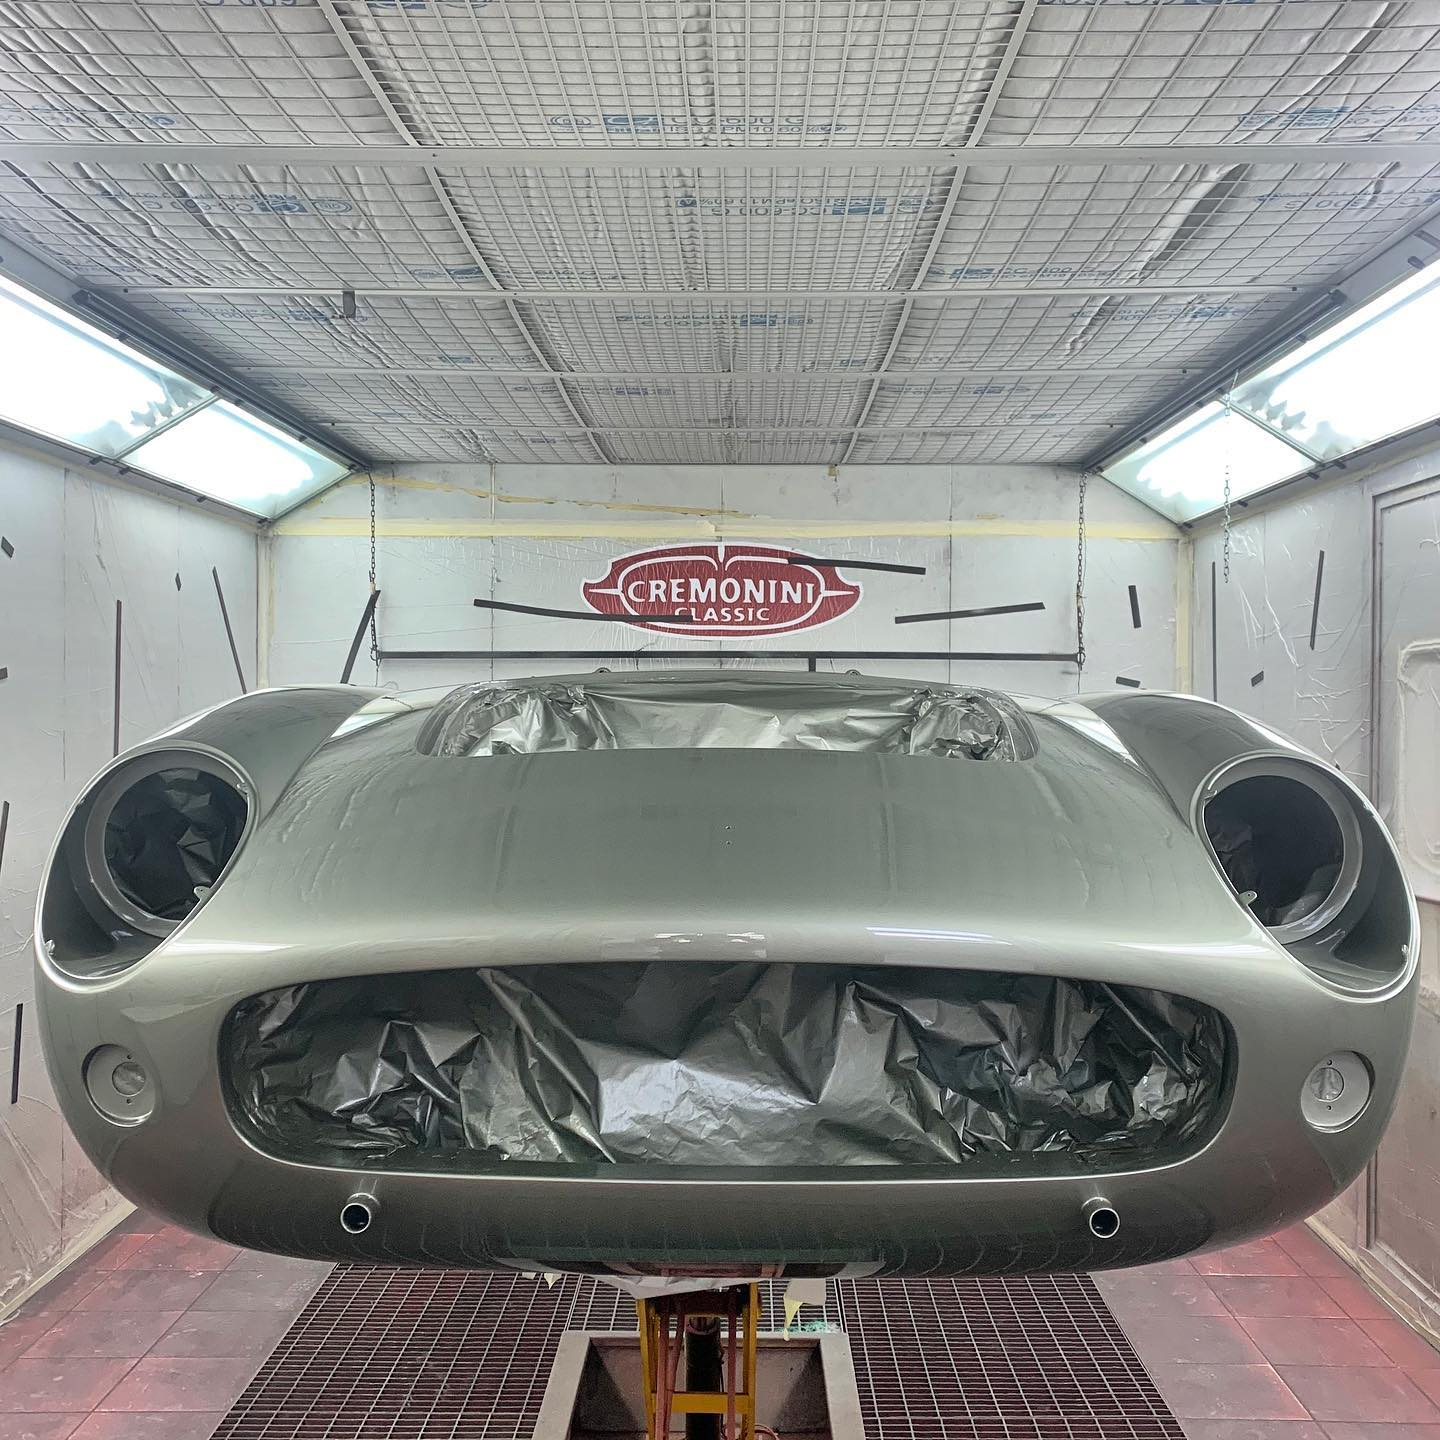 After the Grigio Conchiglia paint, now it's time for polishing on this extraordinary 250 California. Oooh, that amazed look on her face as she is being brought back to her original specs! – – – #backtooriginalspecs #ferrari #ferrari250california #grigioconchiglia #scaglietti #makemodenagreatagain #doosetdaram #madeinitaly #italianstyle #classiccars #italiansdoitbetter #cremoniniclassic #naked